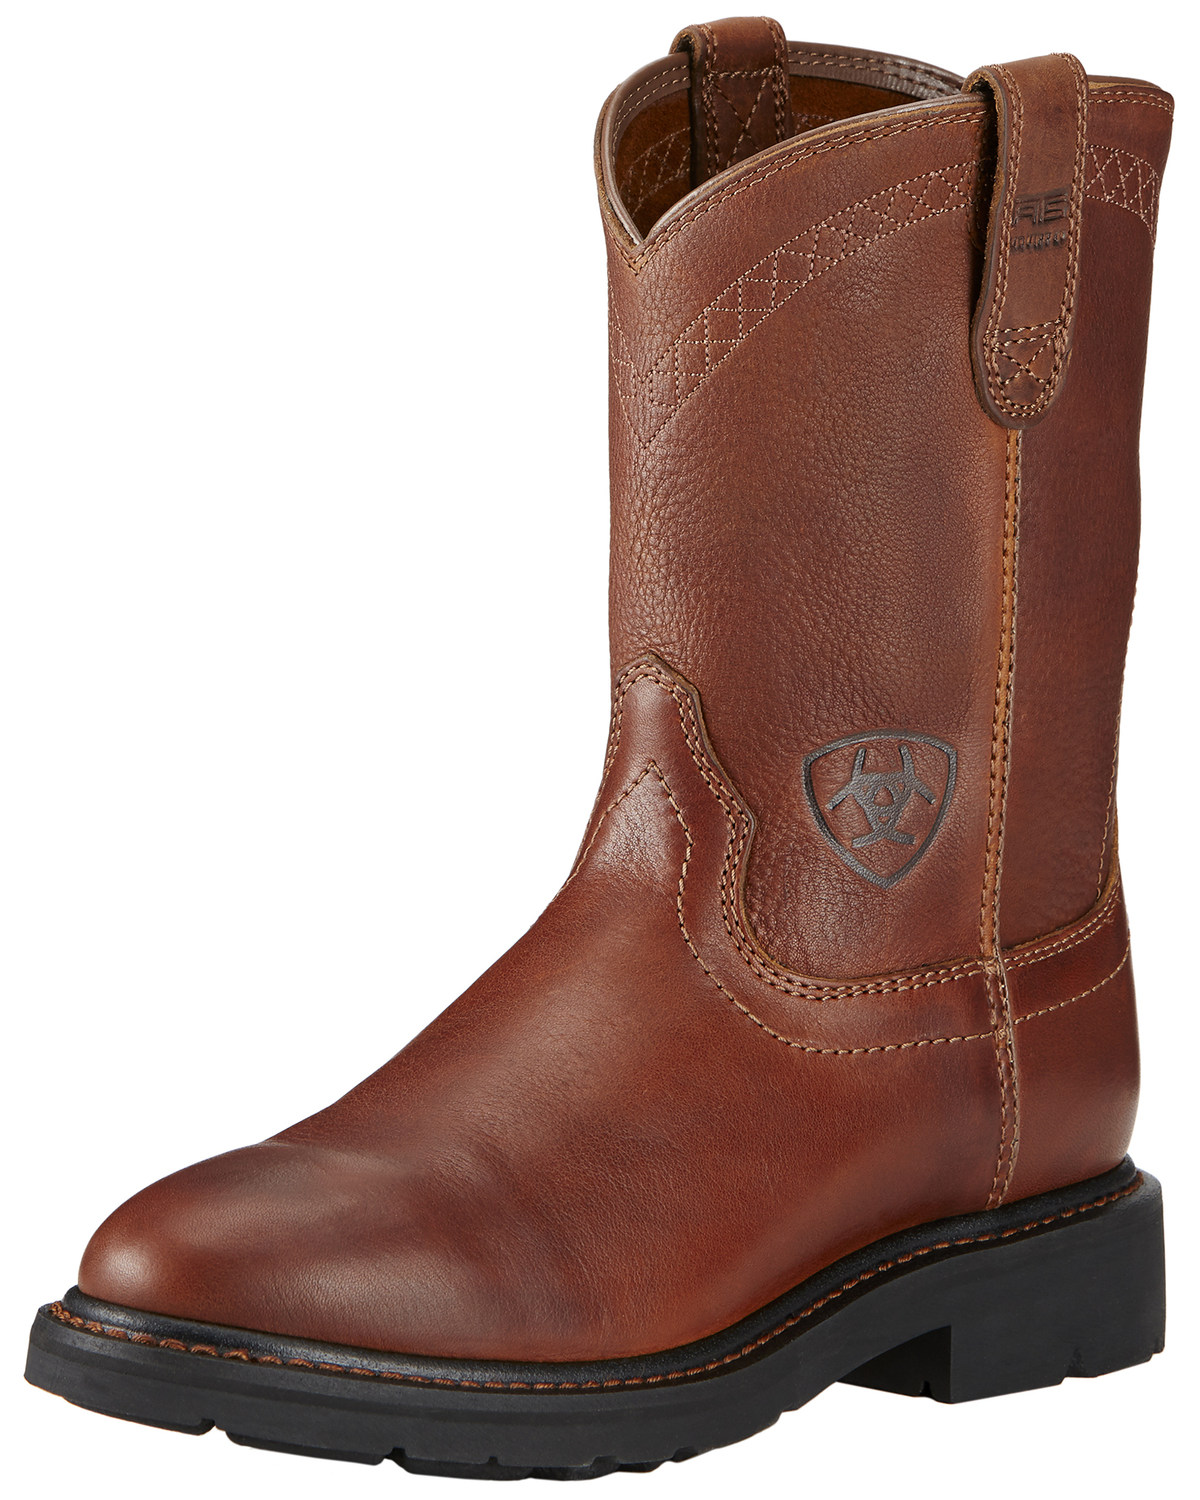 latest huge selection of affordable price Ariat Men's Sierra Work Boots